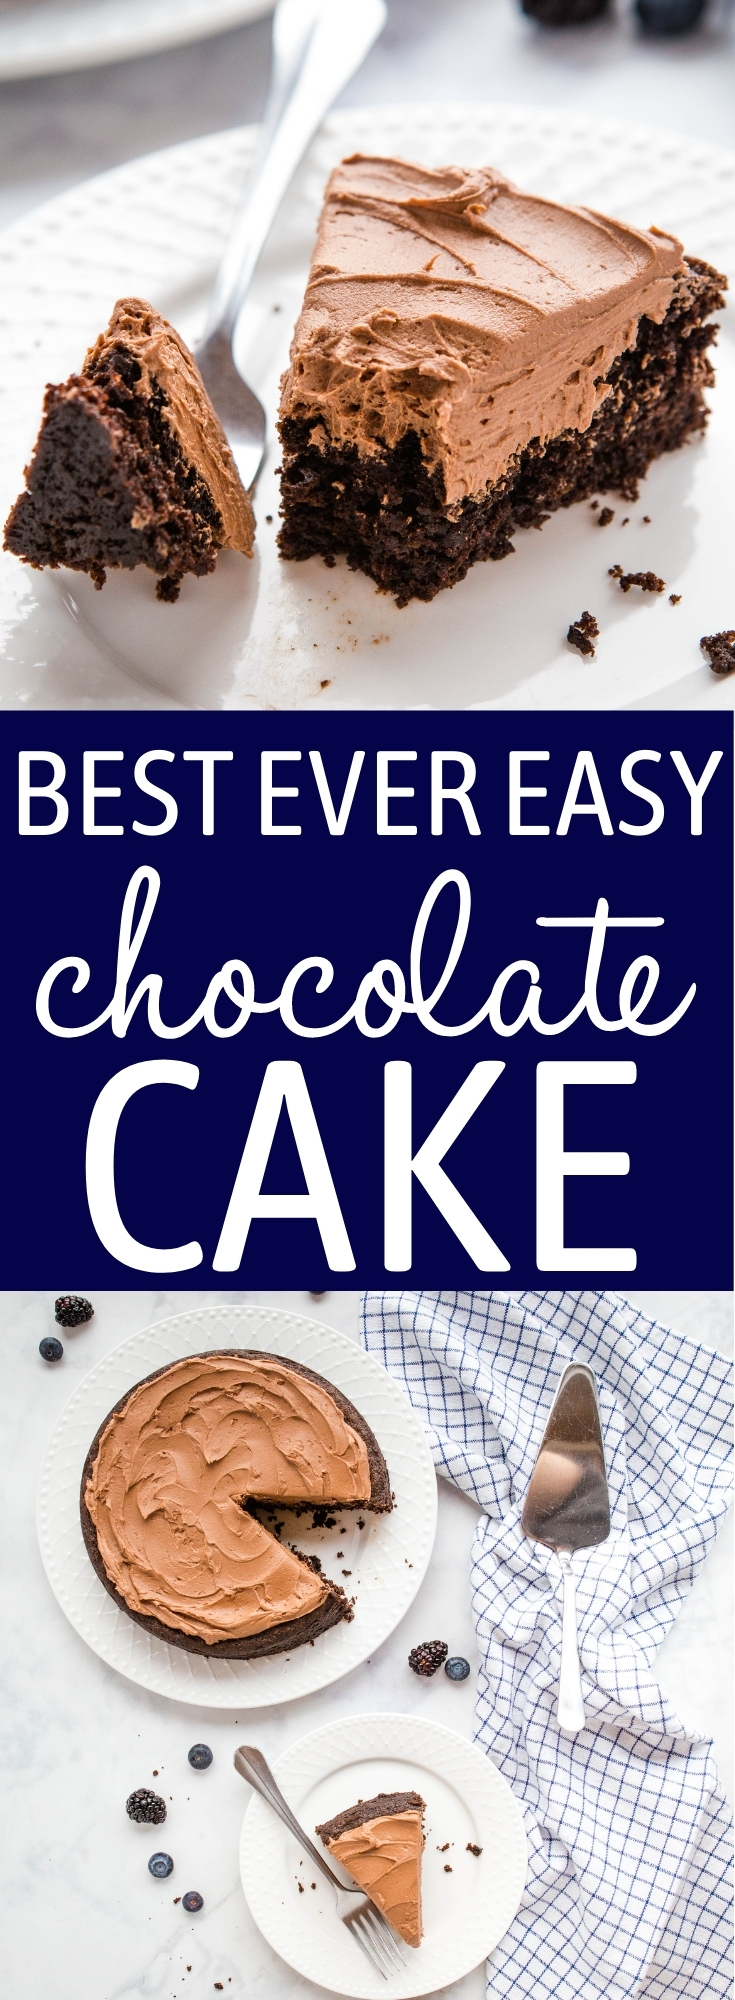 This Best Ever Easy Chocolate Cake is a family favourite recipe that's perfectly moist and tender, ultra chocolatey, and easy to make with basic pantry ingredients! Perfect for beginners! Recipe from thebusybaker.ca! #chocolate #cake #easy #recipe #frosting #simple #bakingforbeginners #familyrecipe #chocolatecake #cakerecipe #baking via @busybakerblog